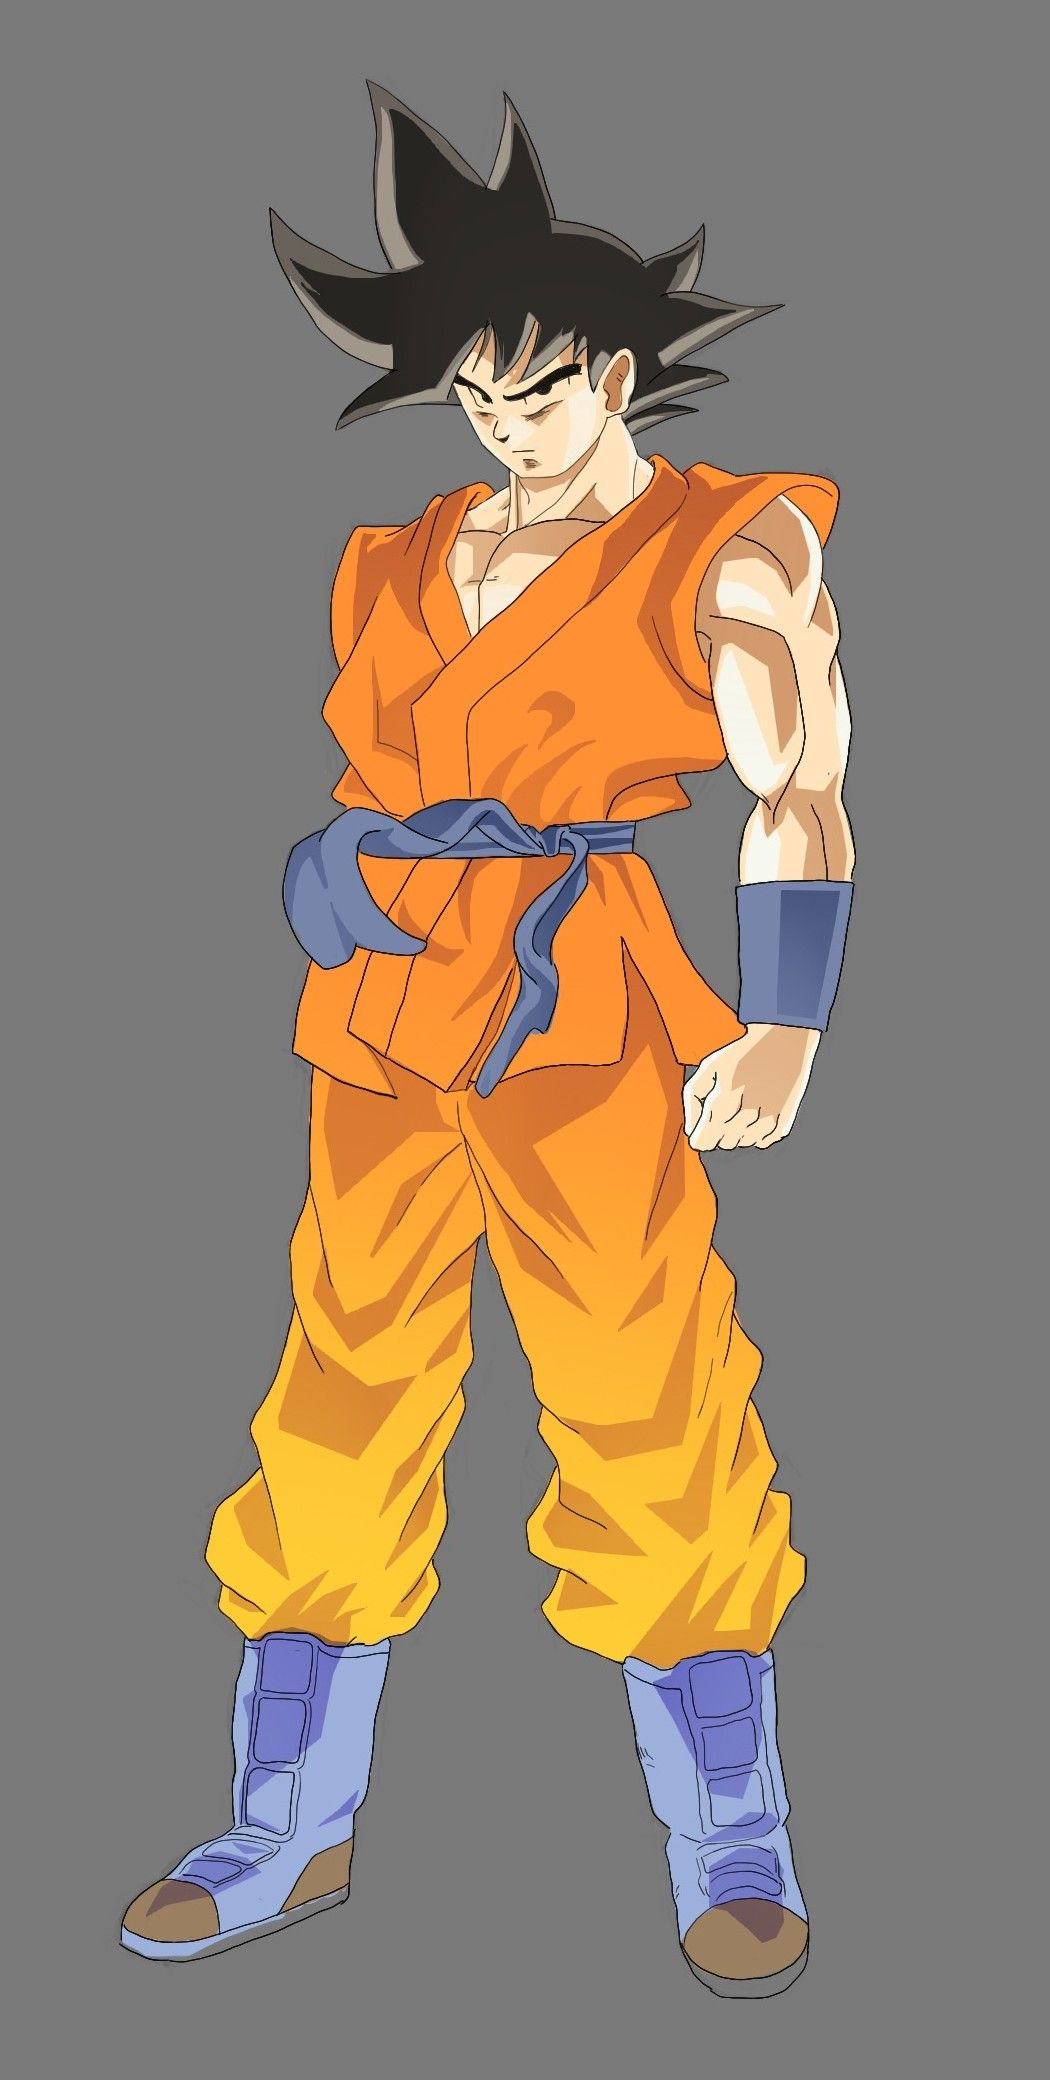 How to draw goku from dragonball visit now for 3d dragon ball z learn how to draw goku with this easy step by step tutorial by the drawing factory find this pin and more on dbz publicscrutiny Gallery